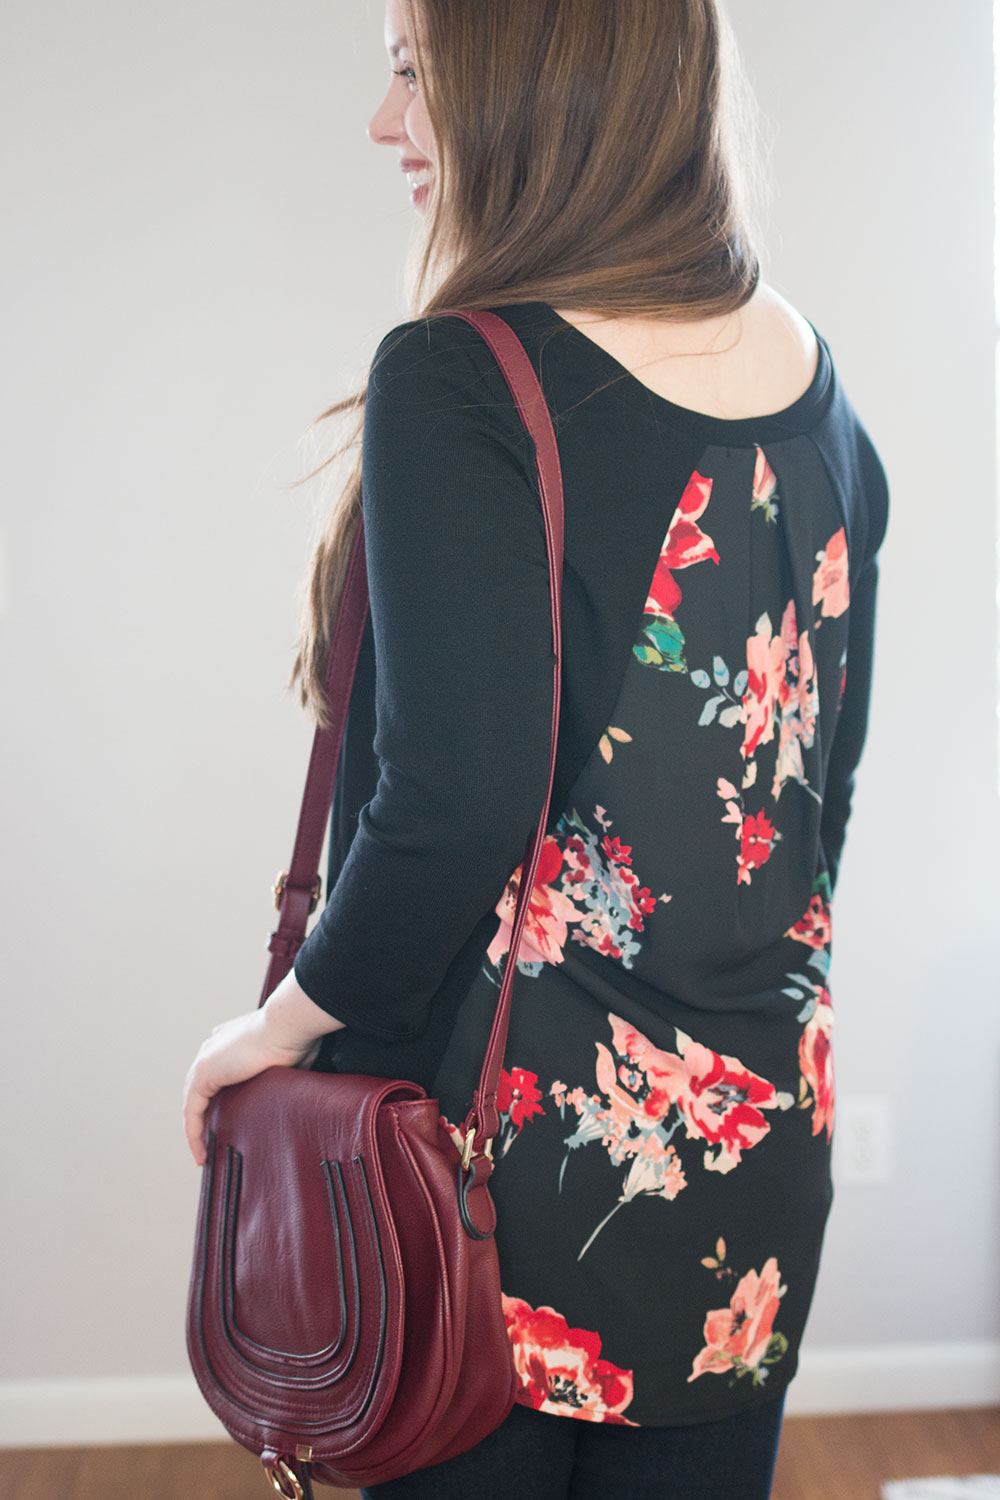 Stitch Fix March 2016 Review // Le Lis Floral Alante Woven Back Knit Top {Back View} // Hello Rigby Seattle Style & Fashion Blog